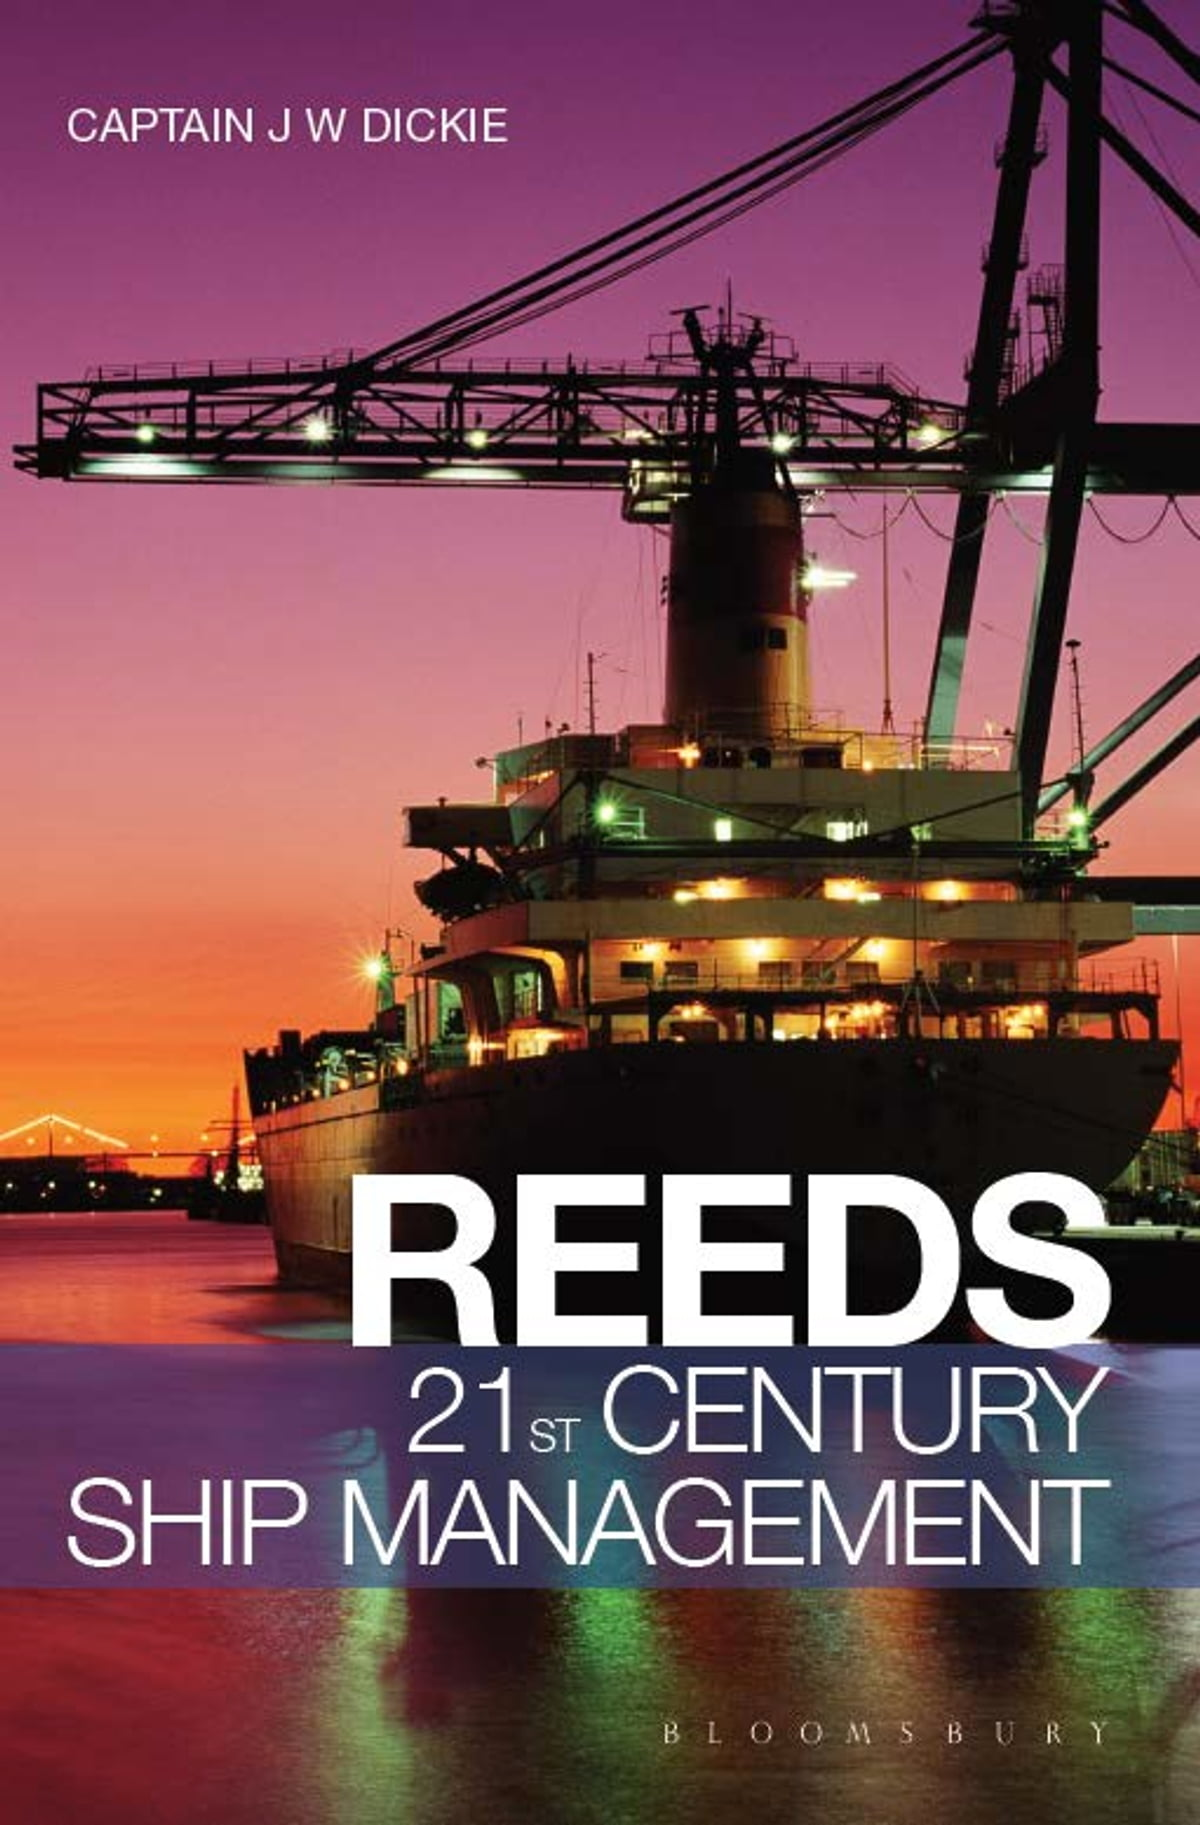 John Dickie Libros Reeds 21st Century Ship Management Ebook By Captain John W Dickie Rakuten Kobo